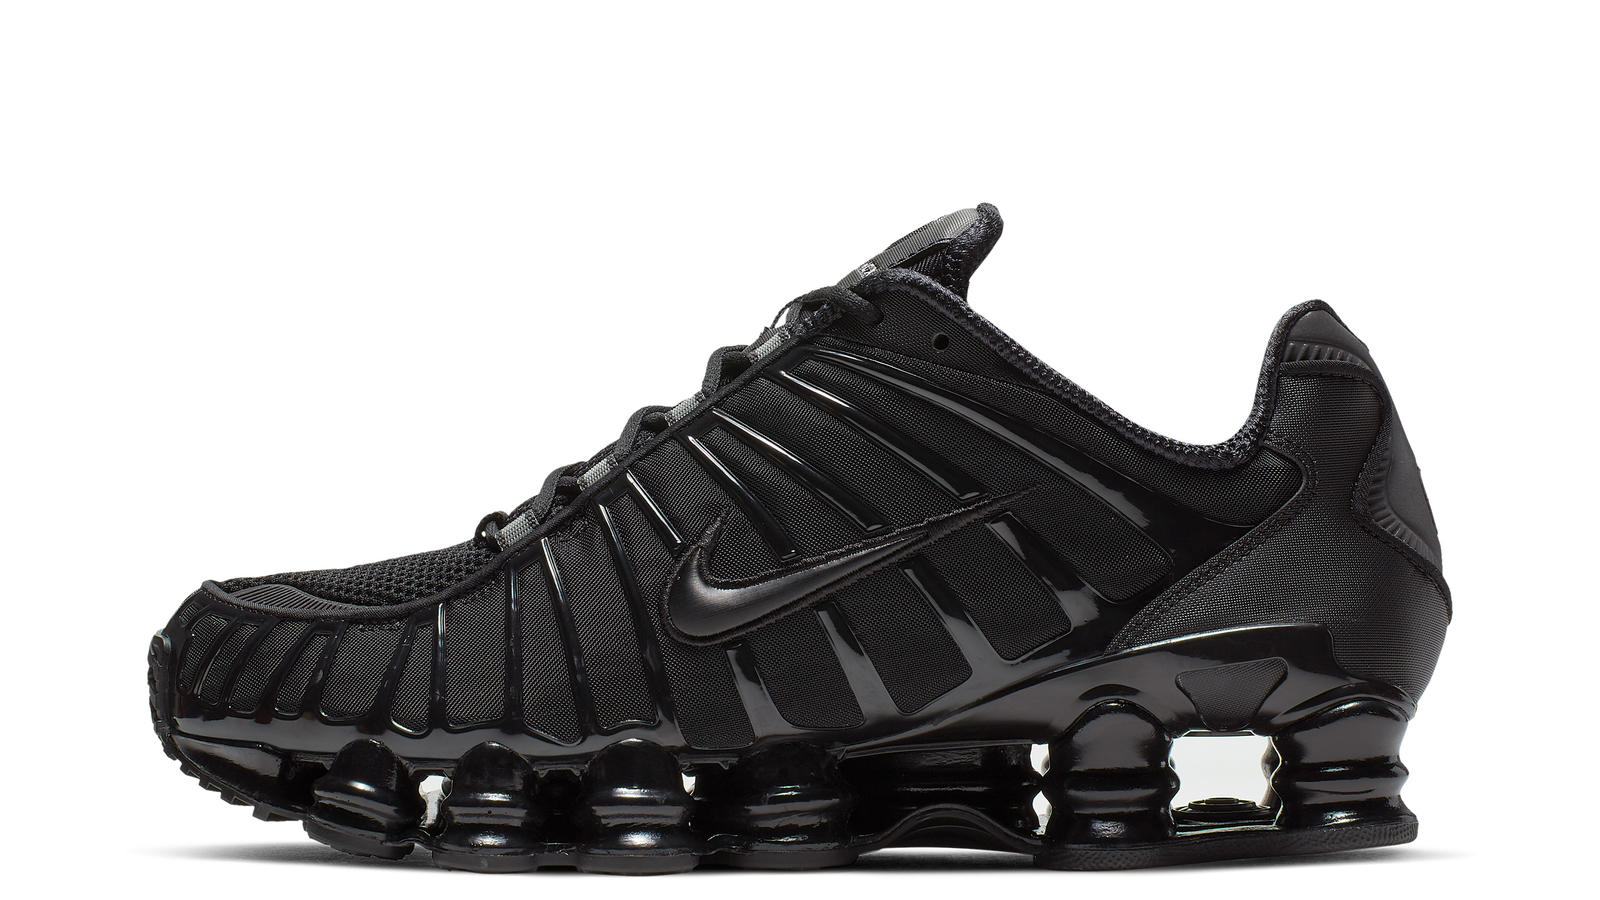 2c261a048bc2e0 How to Get the Nike Shox R4 - Nike News